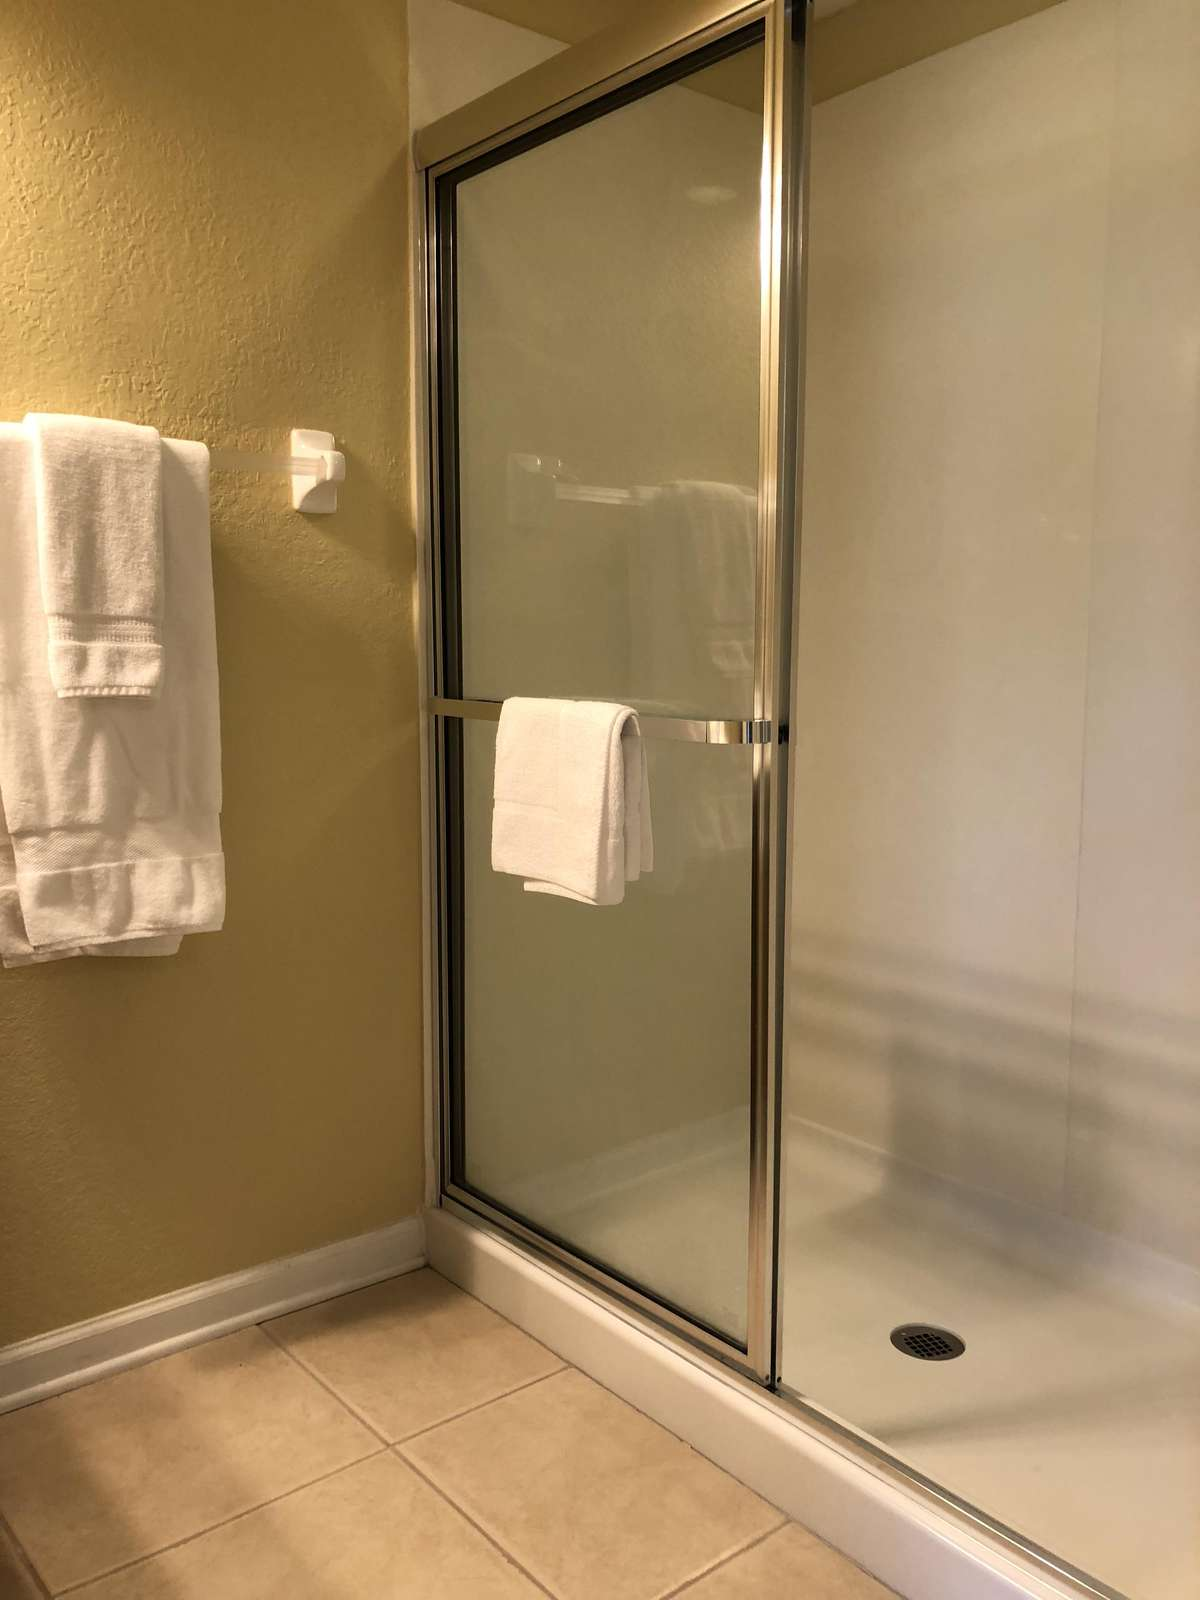 Shower first floor bathoom